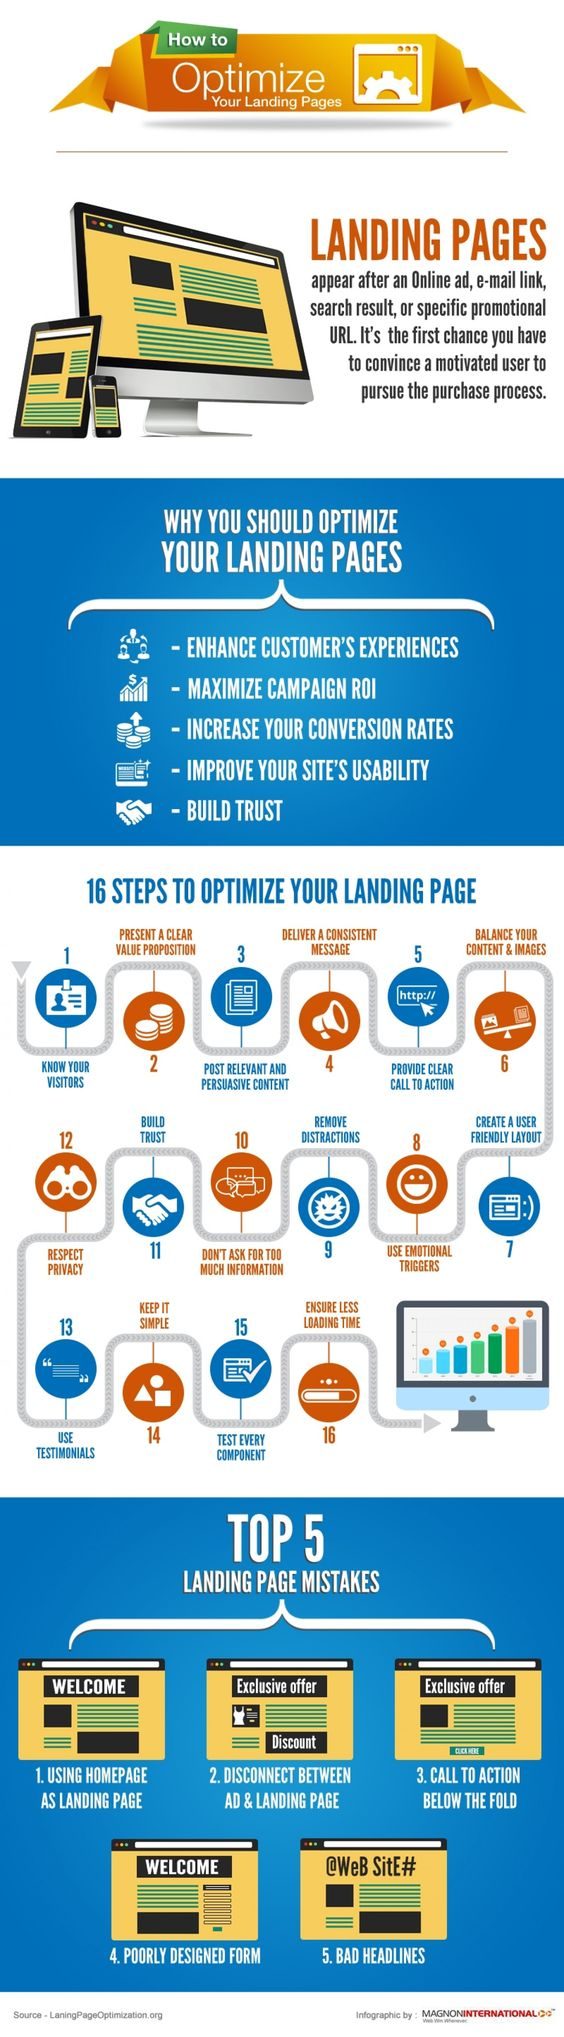 How to Optimize Your Landing Pages:  Do you know #landingpage plays important role in driving more #conversions and returning visits on the #website? A strategically designed landing page can create a first impression about the company forthe visitors. Landing pages are much more than just creating a simple design and slapping up an email subscription form or download button. View this infographic